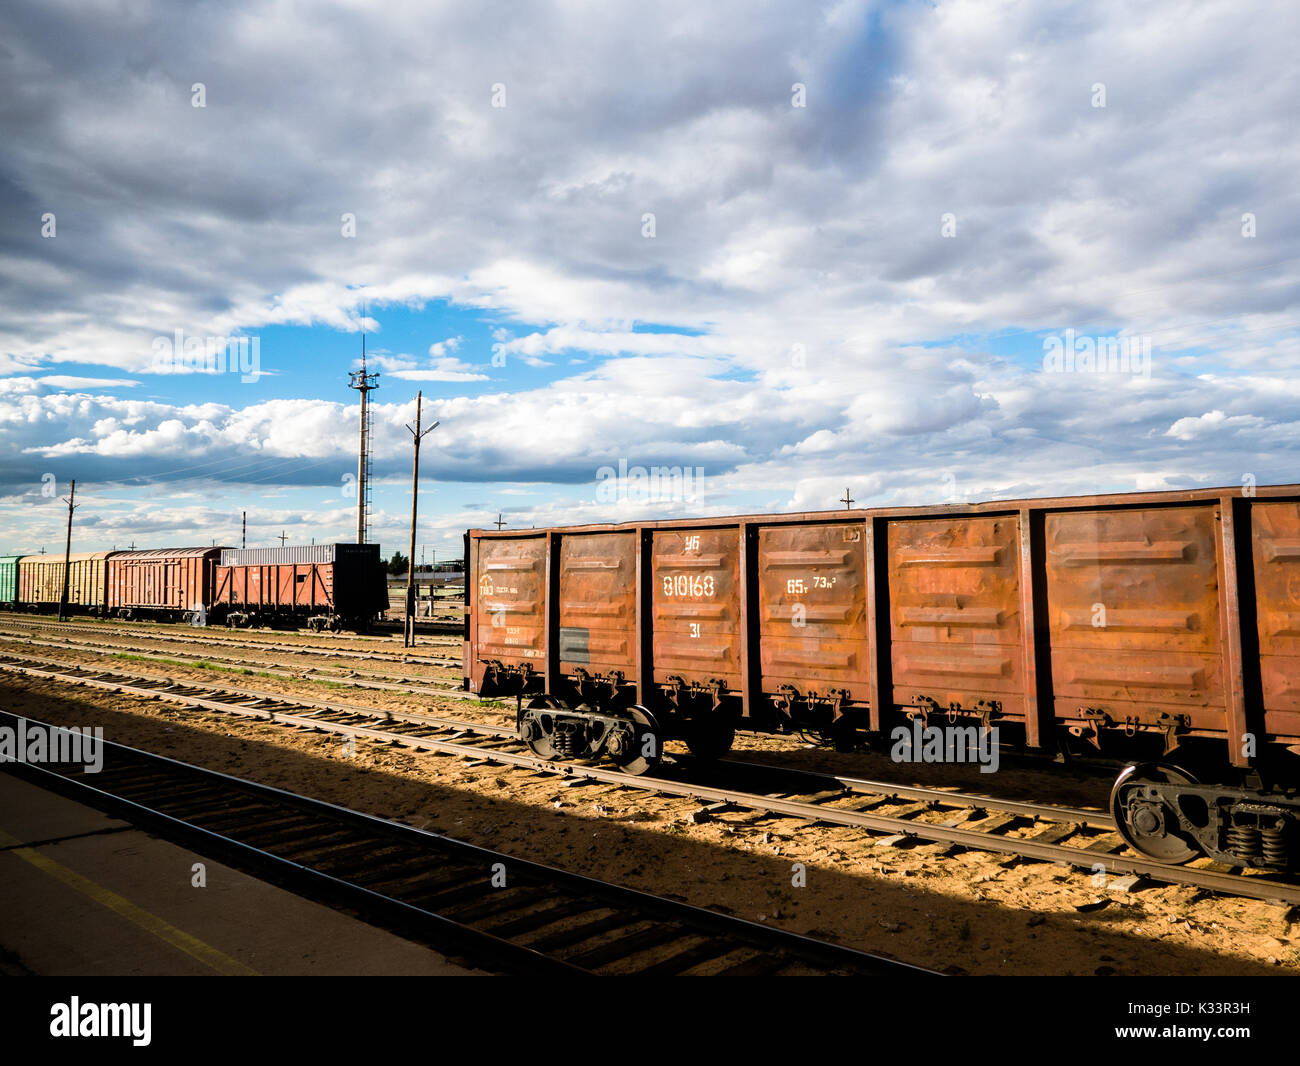 Train station in Mongolia - Stock Image